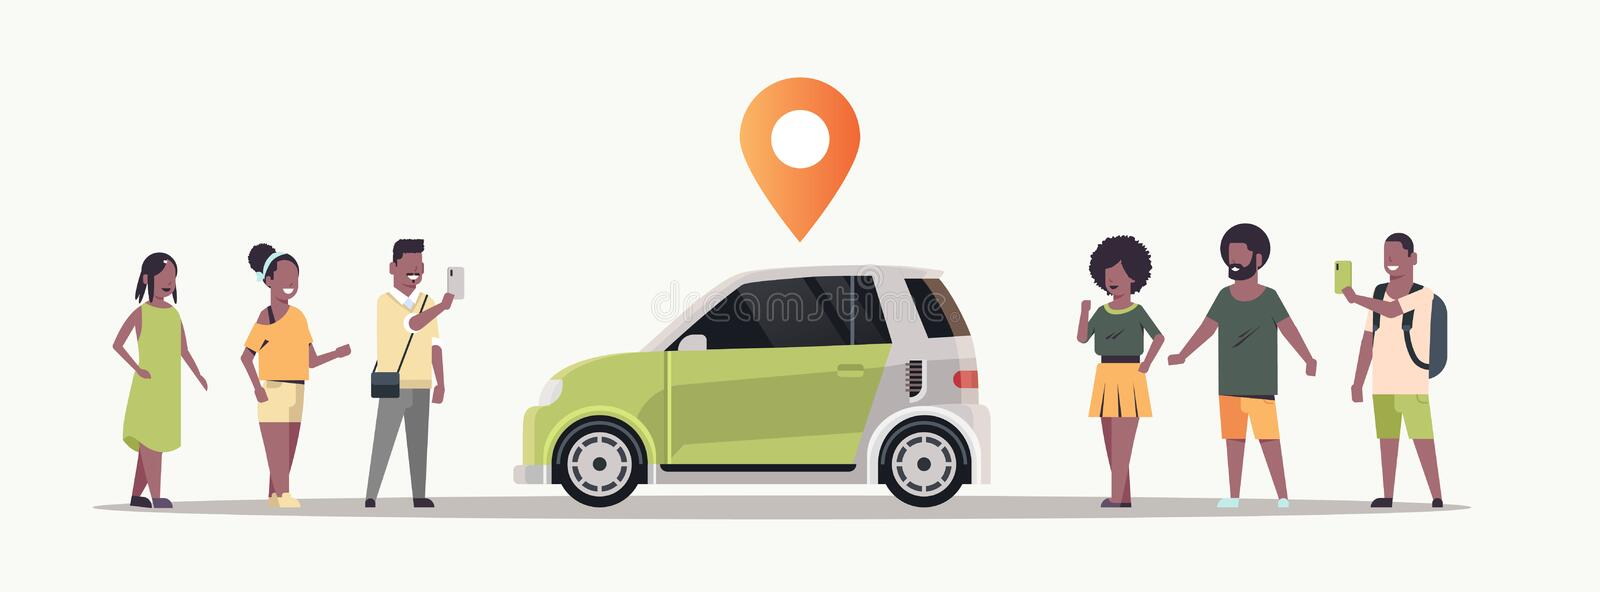 African american people using mobile application ordering auto with location pin online taxi car sharing carpooling royalty free illustration